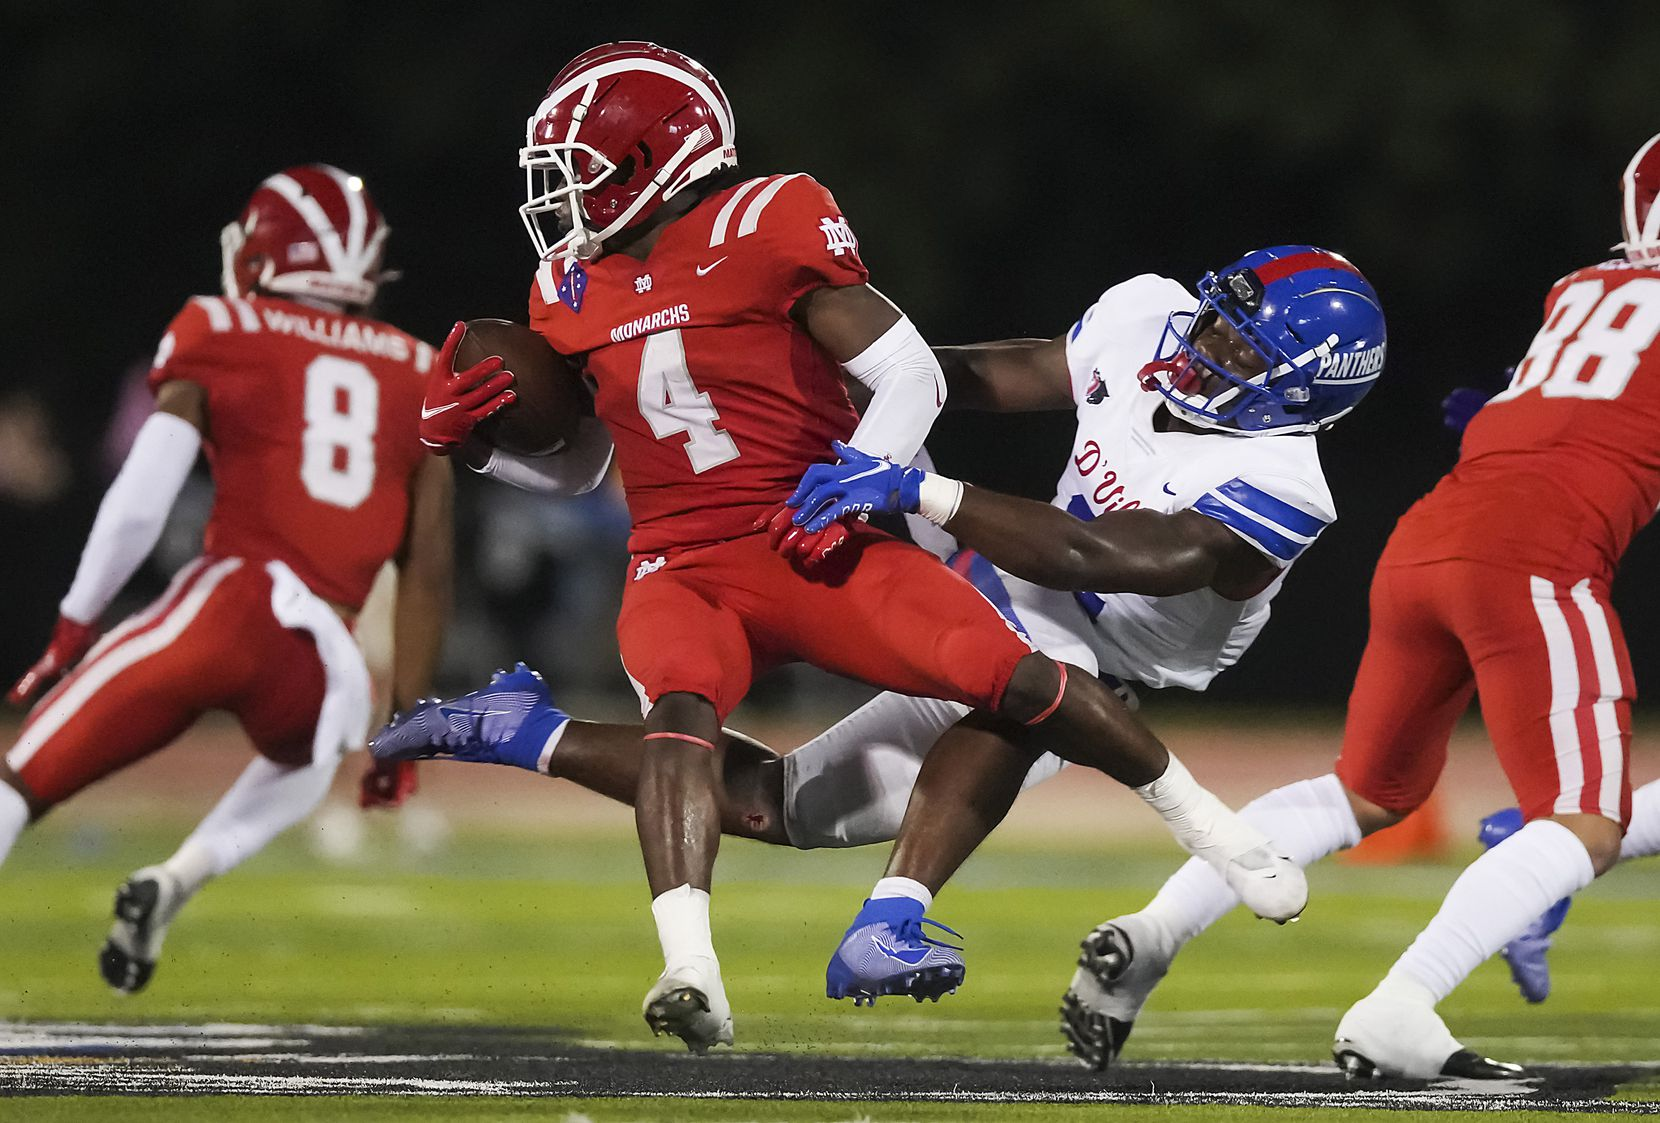 Mater Dei running back Raleek Brown (4) is brought down by Duncanville linebacker Jordan Crook (2) during the first half of a high school football game on Friday, Aug. 27, 2021, in Duncanville. (Smiley N. Pool/The Dallas Morning News)